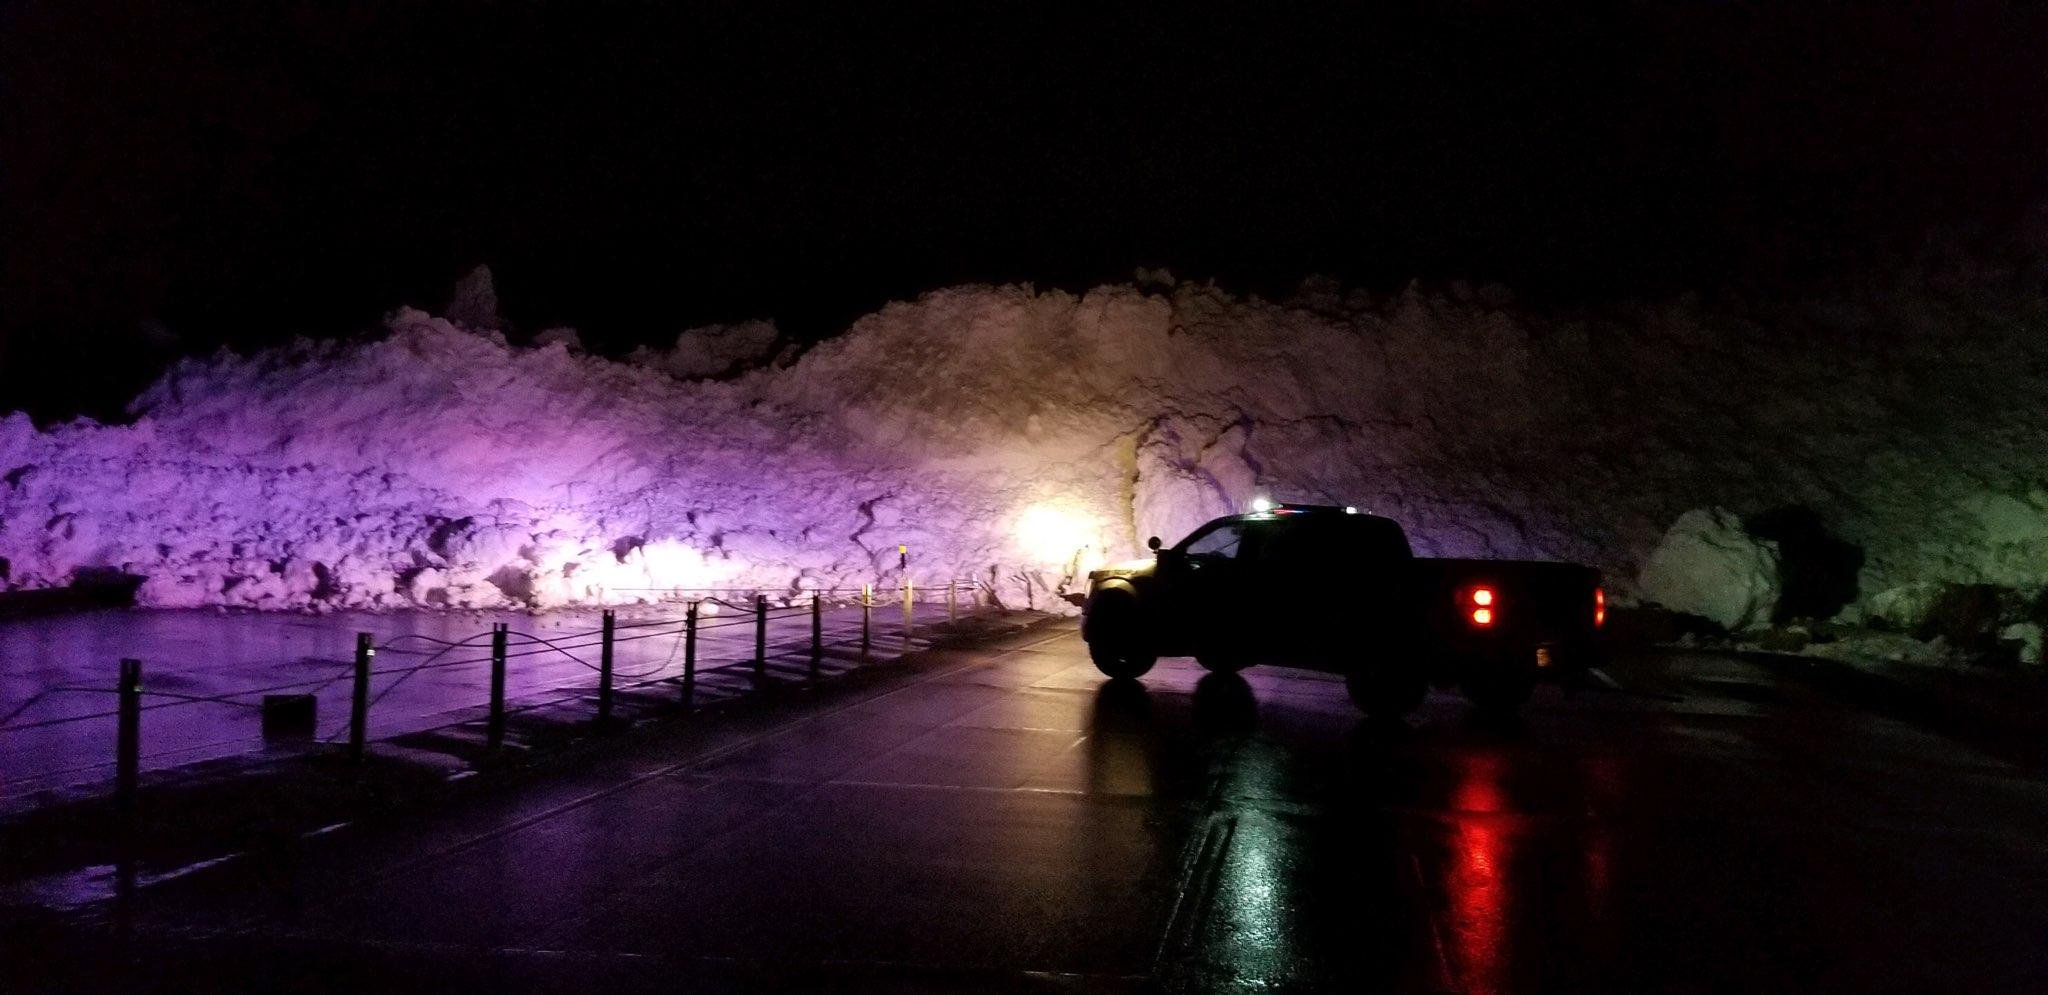 The Utah Highway Patrol reports Provo Canyon was closed Thursday at 7:30 p.m. after an avalanche. (Photo courtesy Utah Highway Patrol)